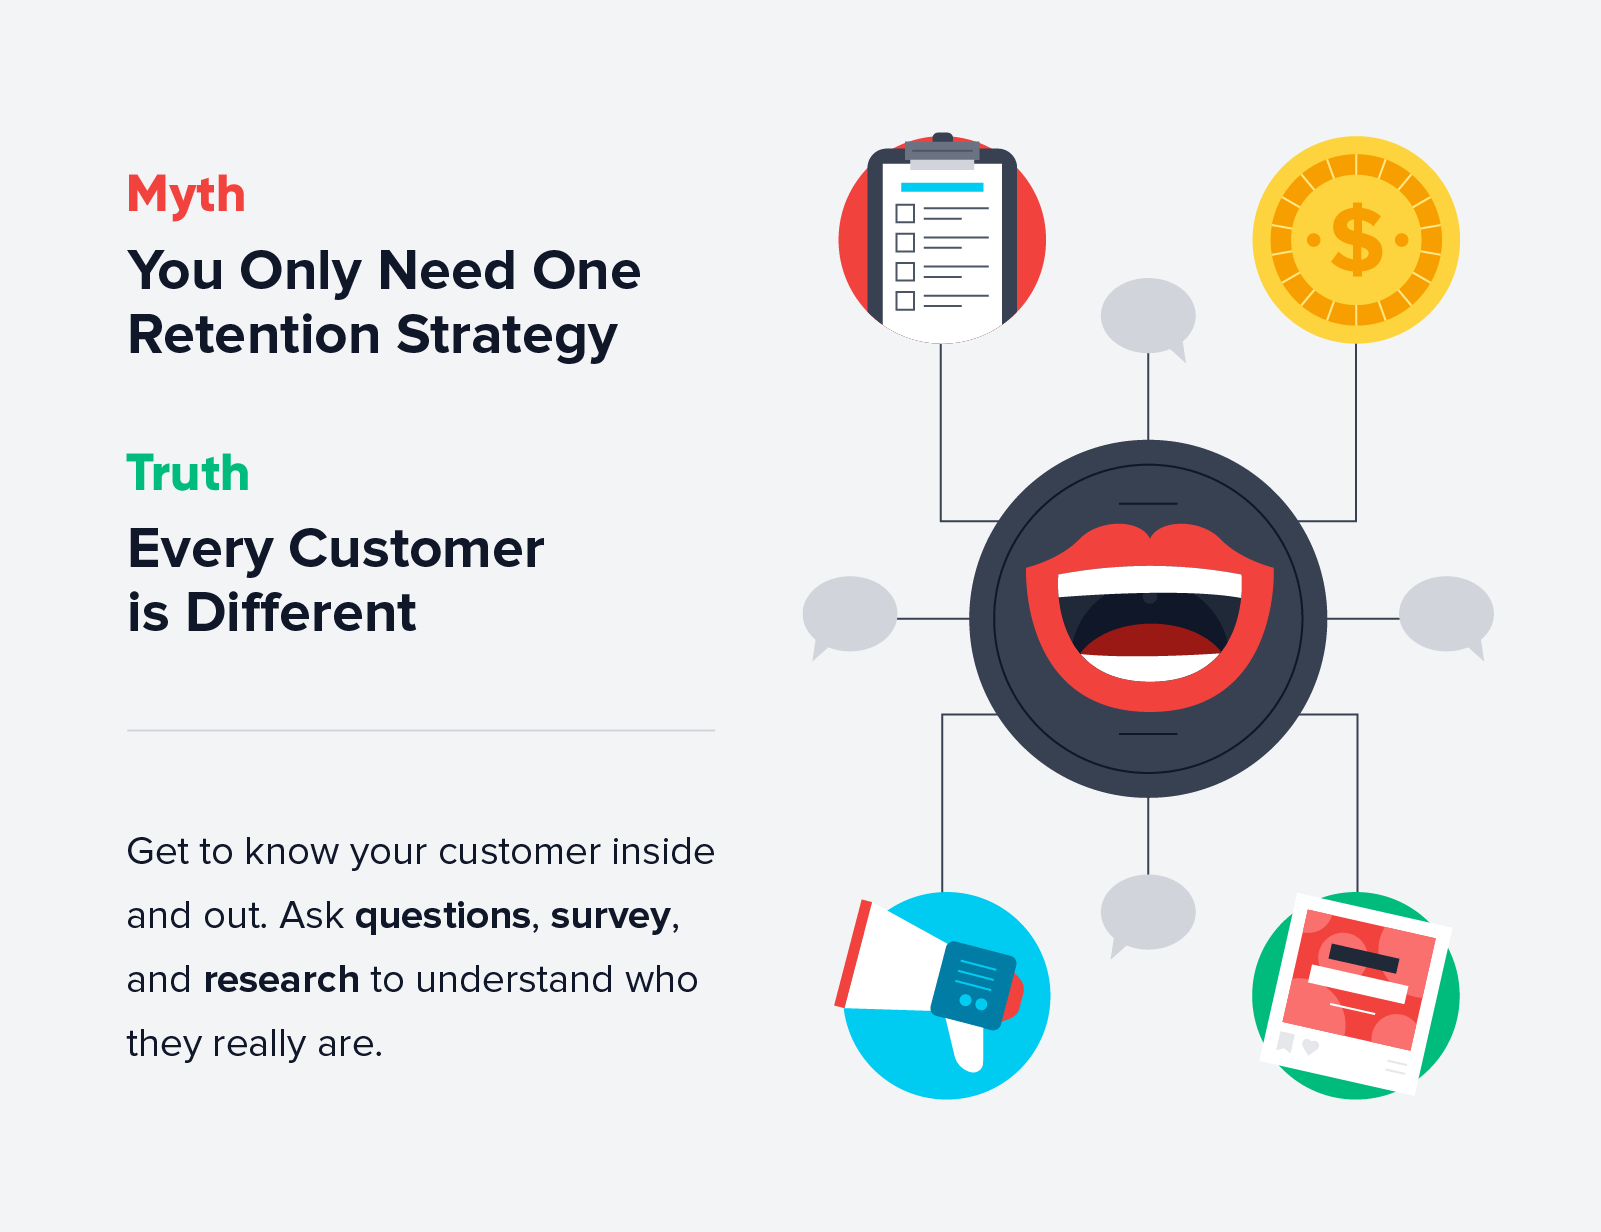 every customer is different